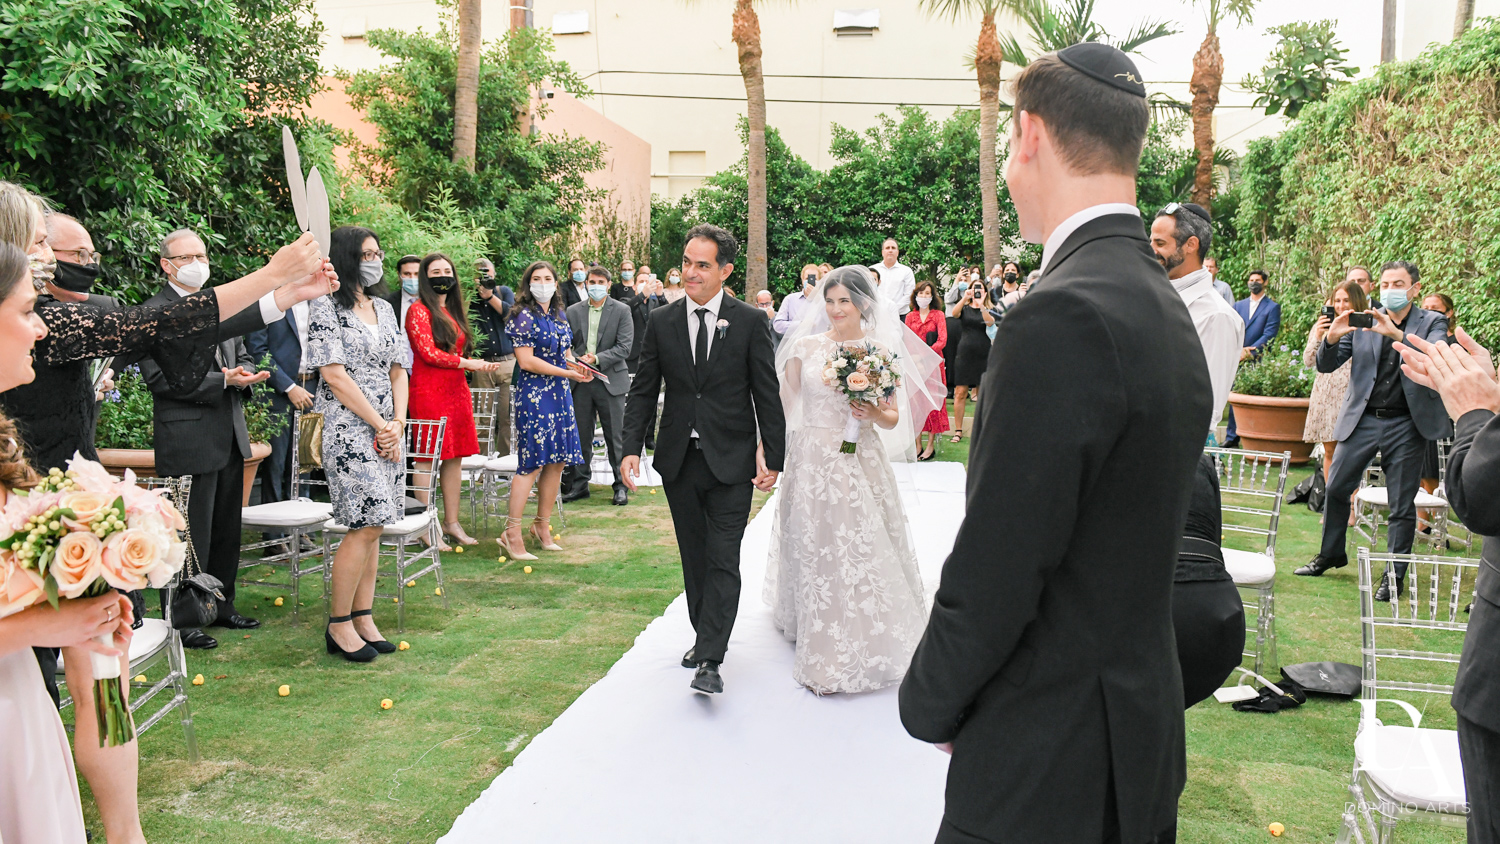 bride walking aisle at Luxury Summer Wedding at The Colony Hotel Palm Beach by Domino Arts Photography